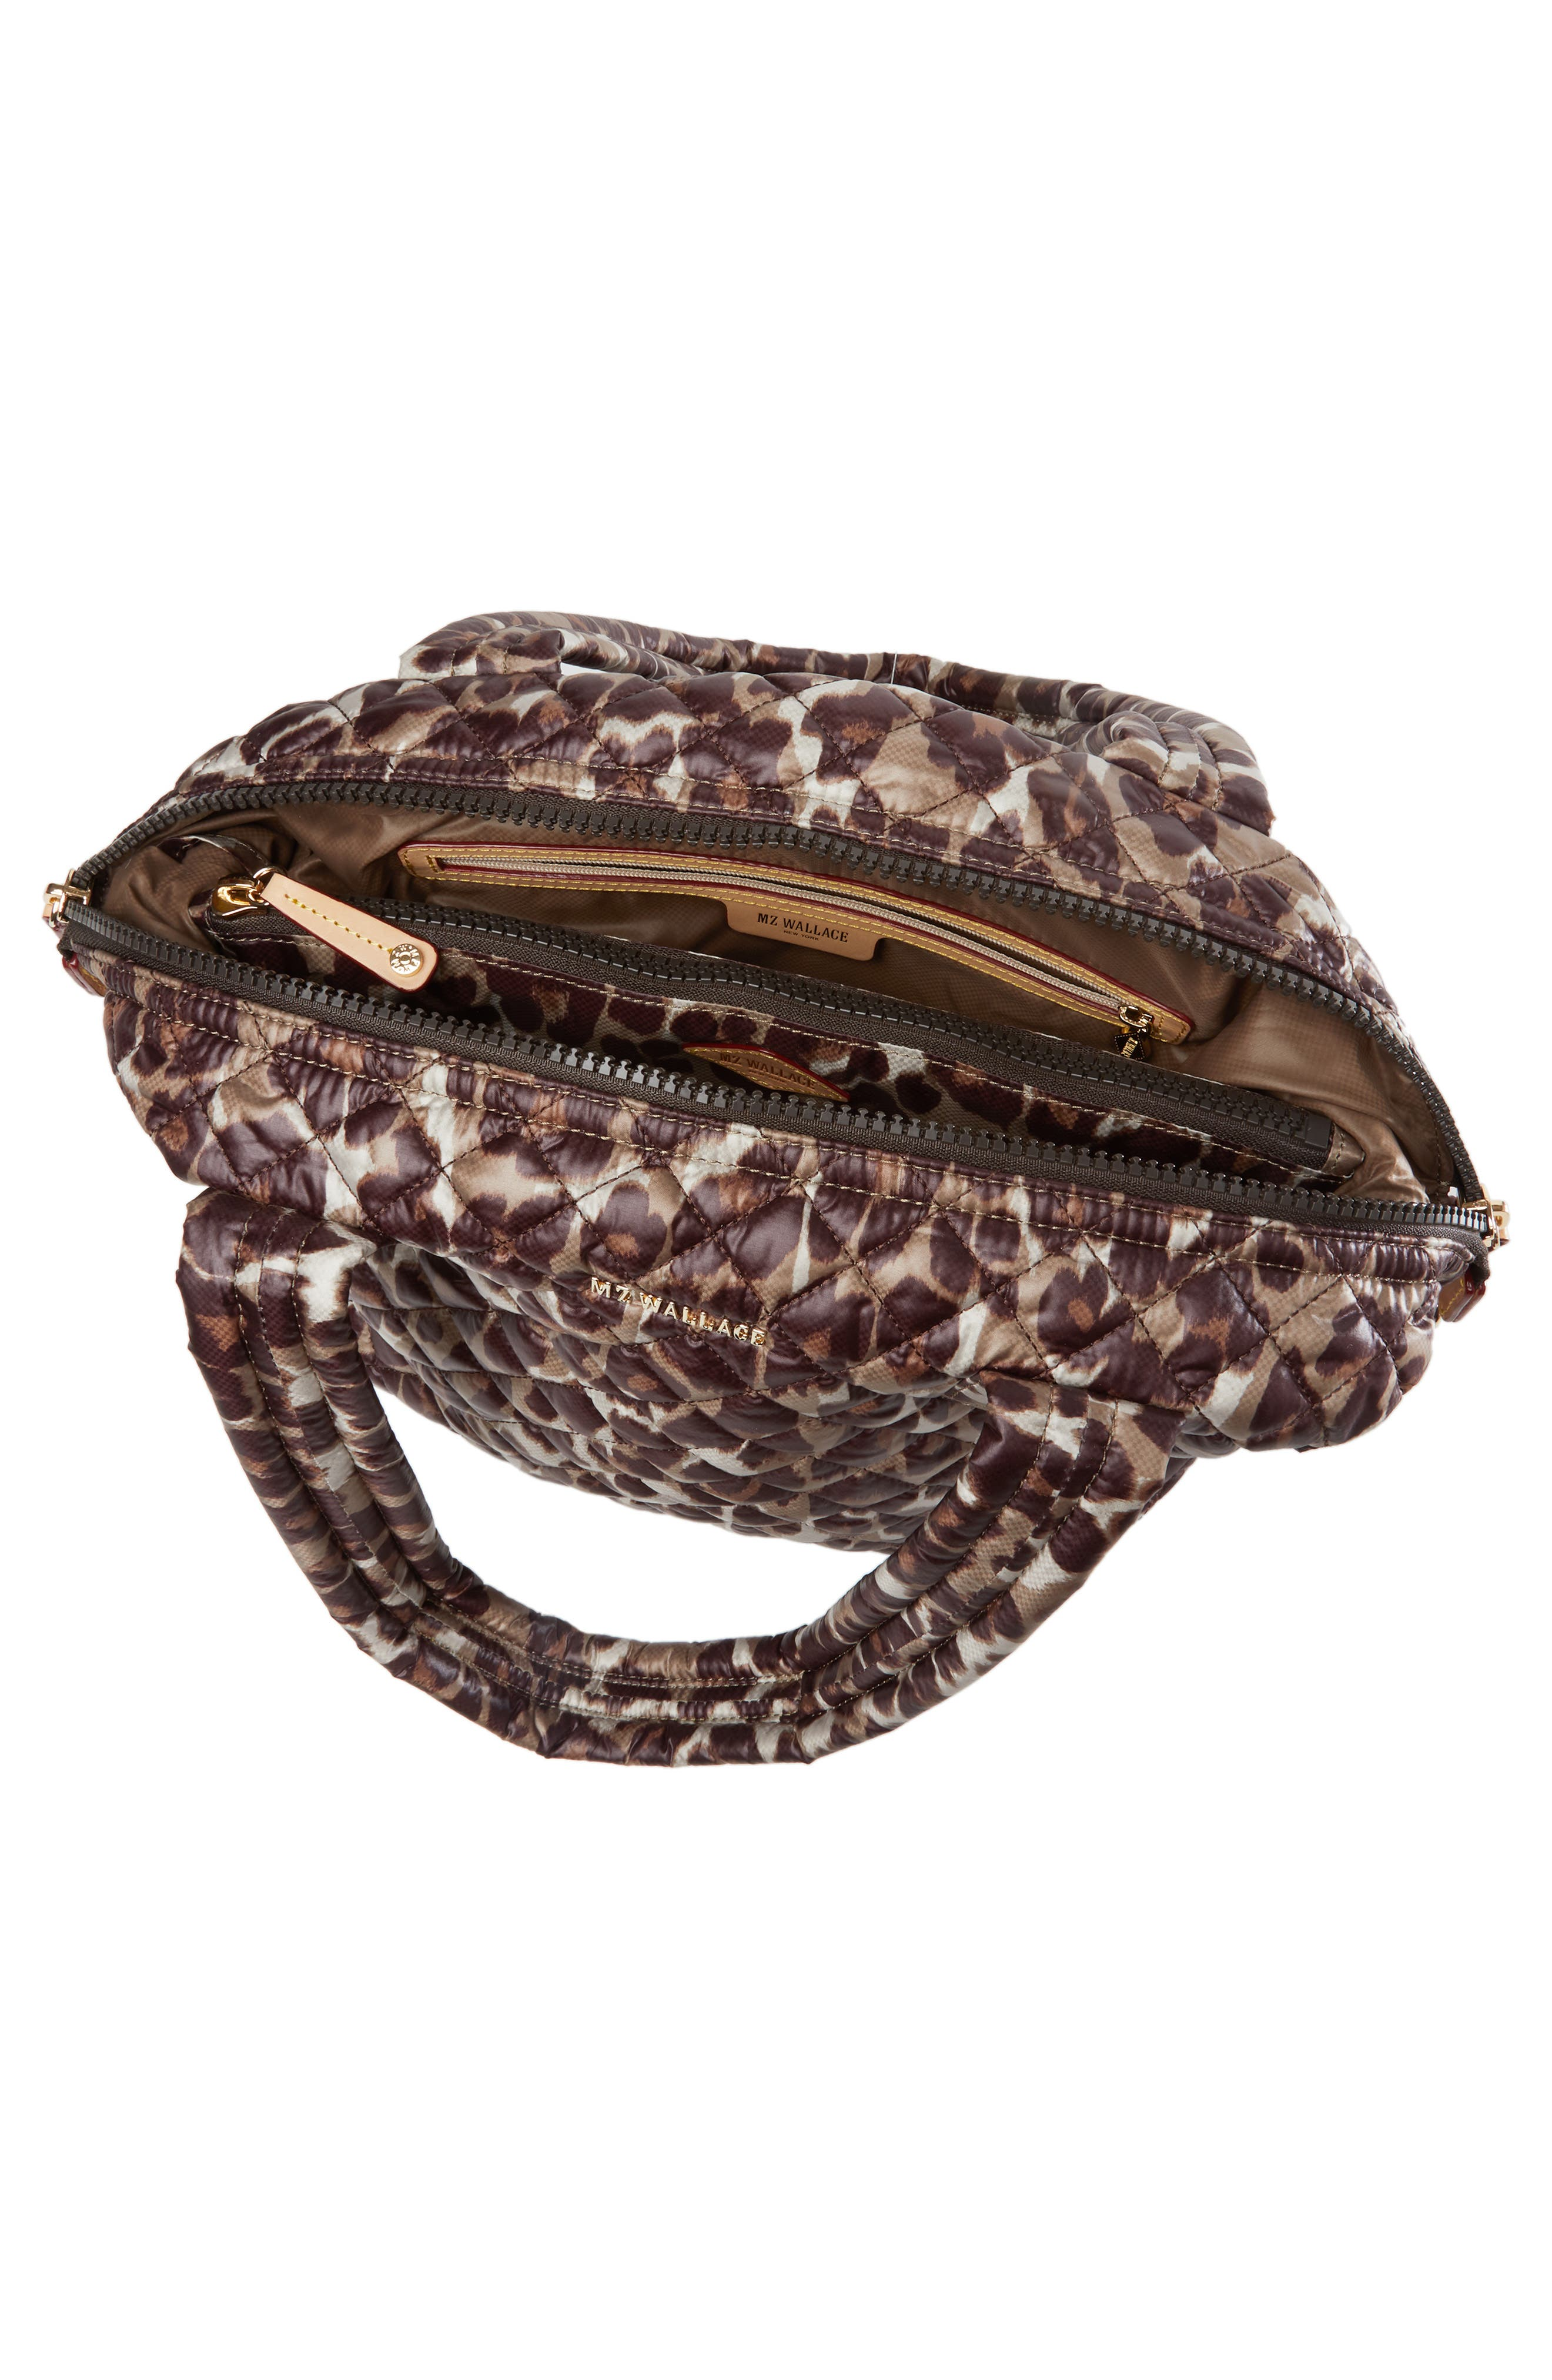 Medium Sutton Shoulder Tote,                             Alternate thumbnail 2, color,                             LEOPARD PRINT